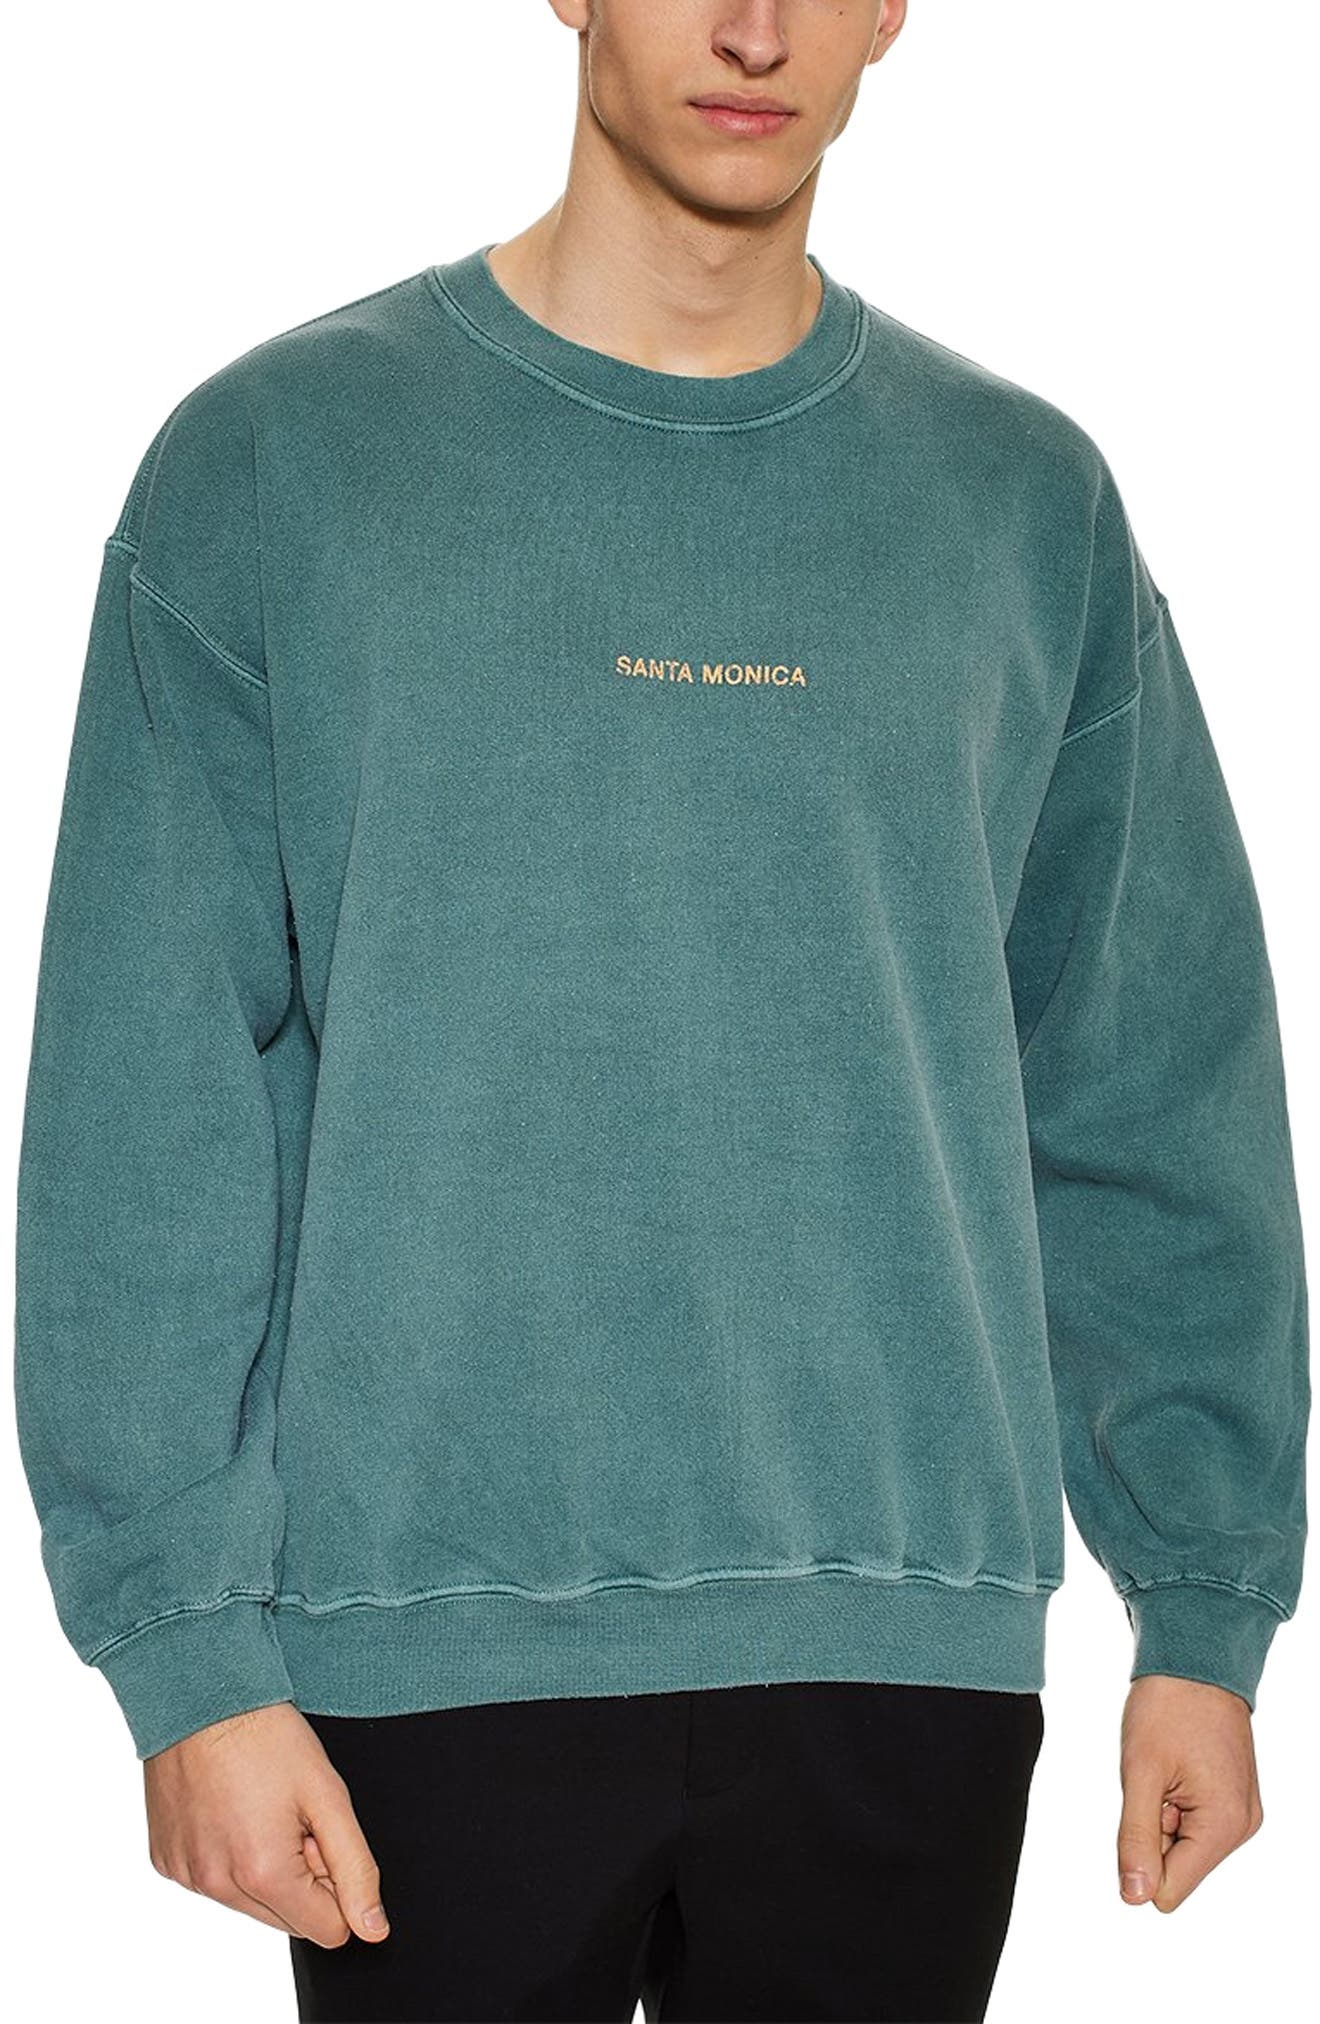 TOPMAN Santa Monica Oversize Sweatshirt, Main, color, GREEN